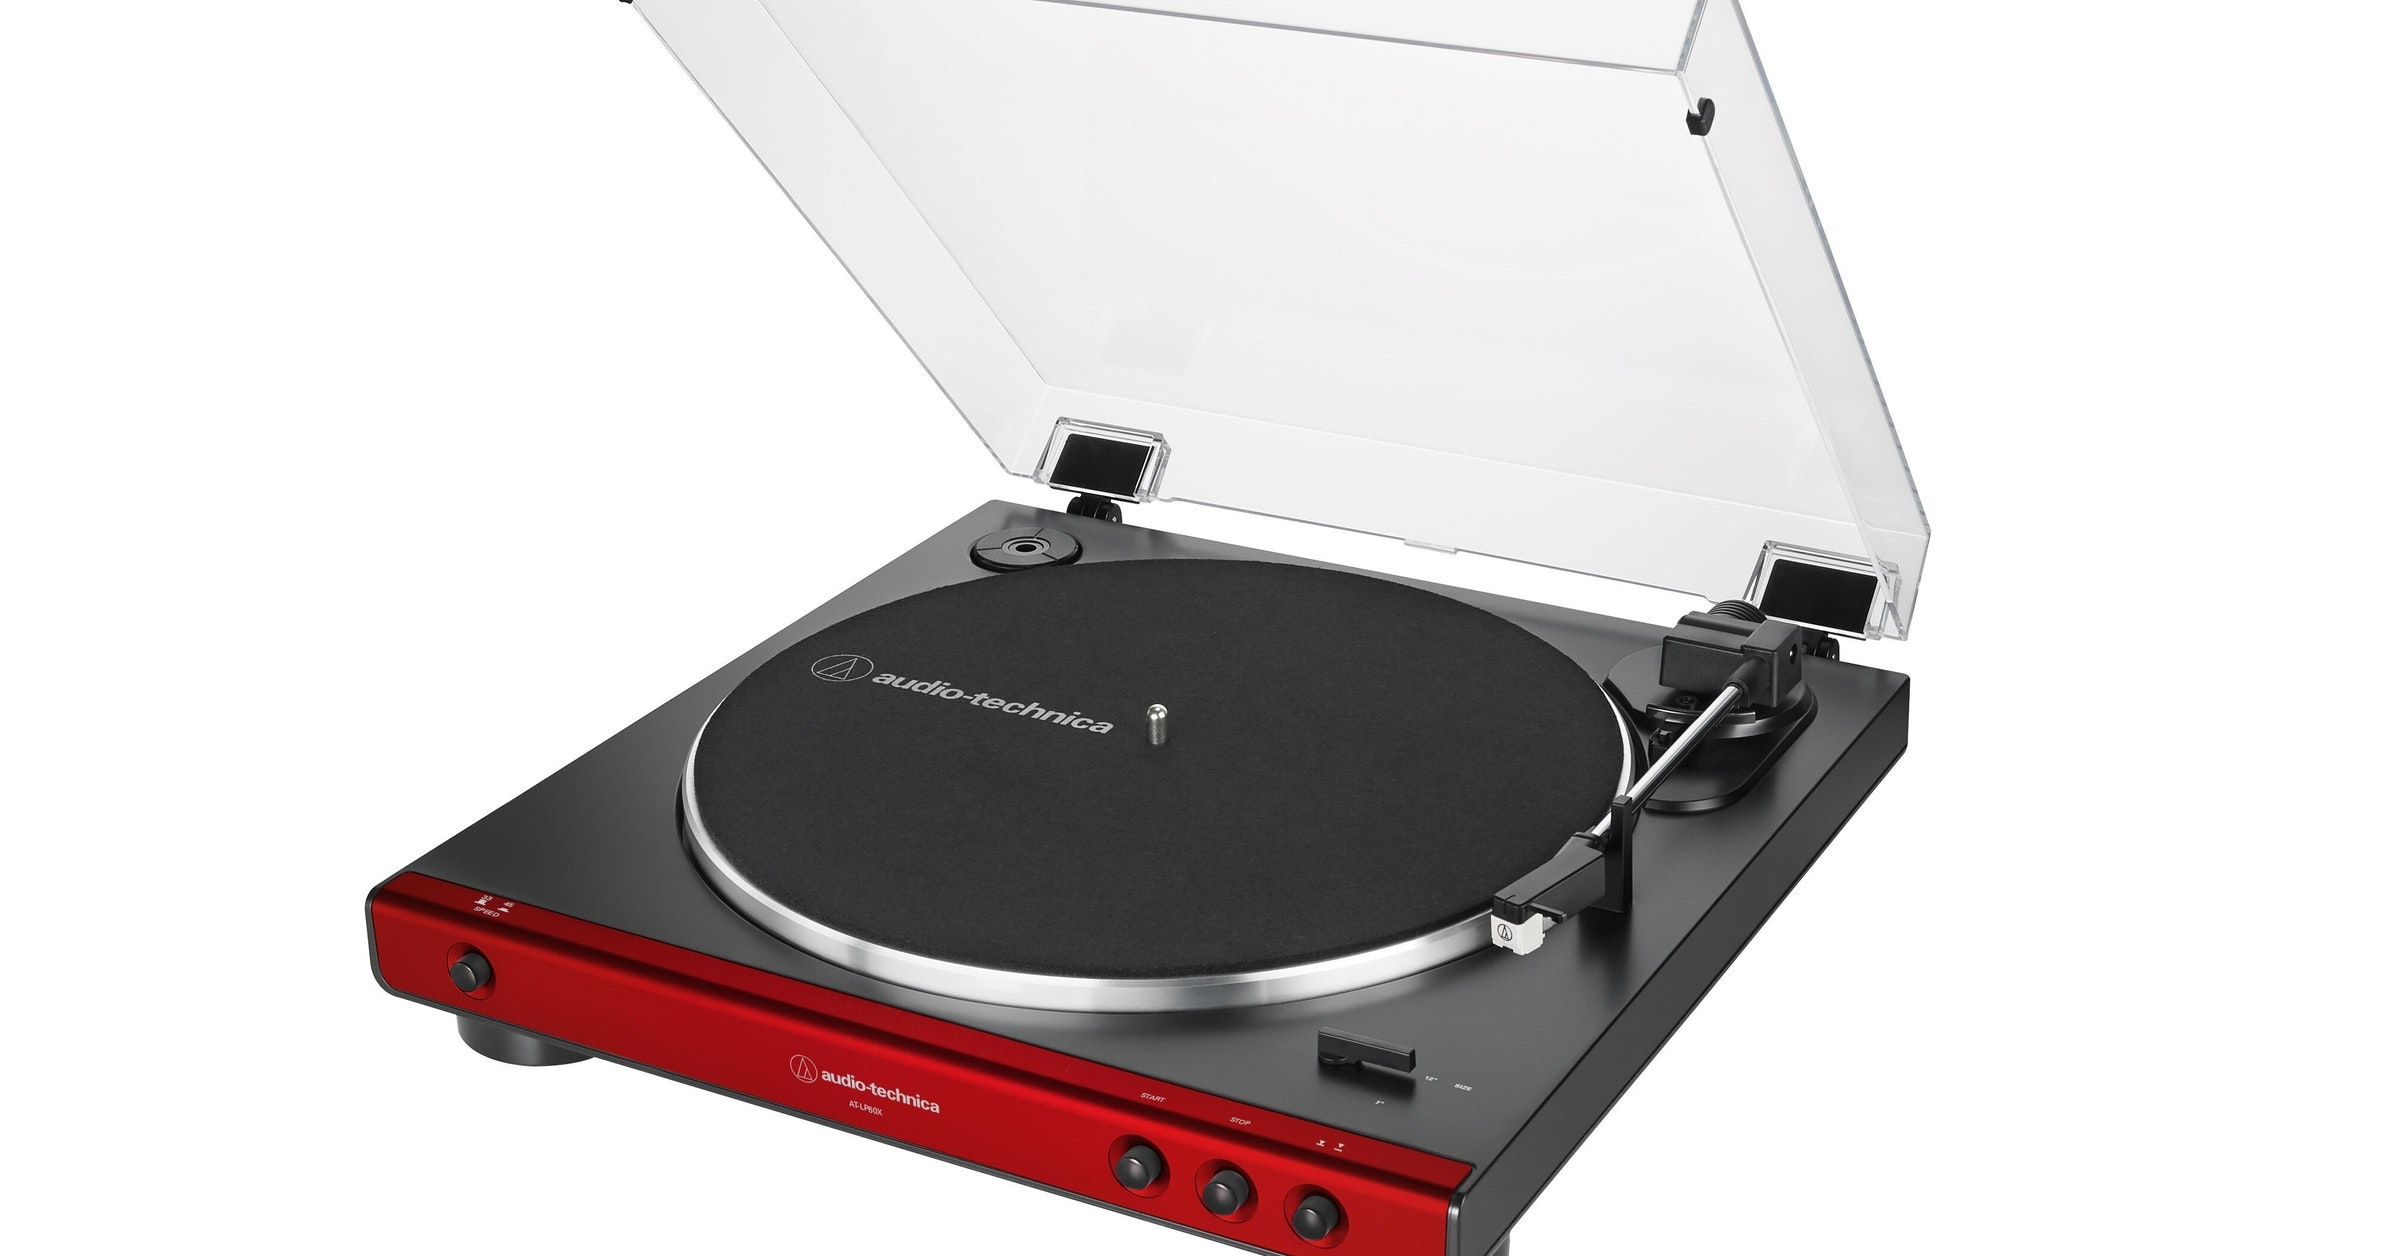 Audio-Technica, Turntable, High fidelity, Phonograph, Magnetic cartridge, Phonograph record, Audio-Technica AT-LP60, Belt-drive turntable, Stereophonic sound, Wireless, audio technica lp60xbt, Record player, Electronics, Technology, Electronic device, Electronic instrument, Media player, Hot plate, Gramophone record, Data storage device